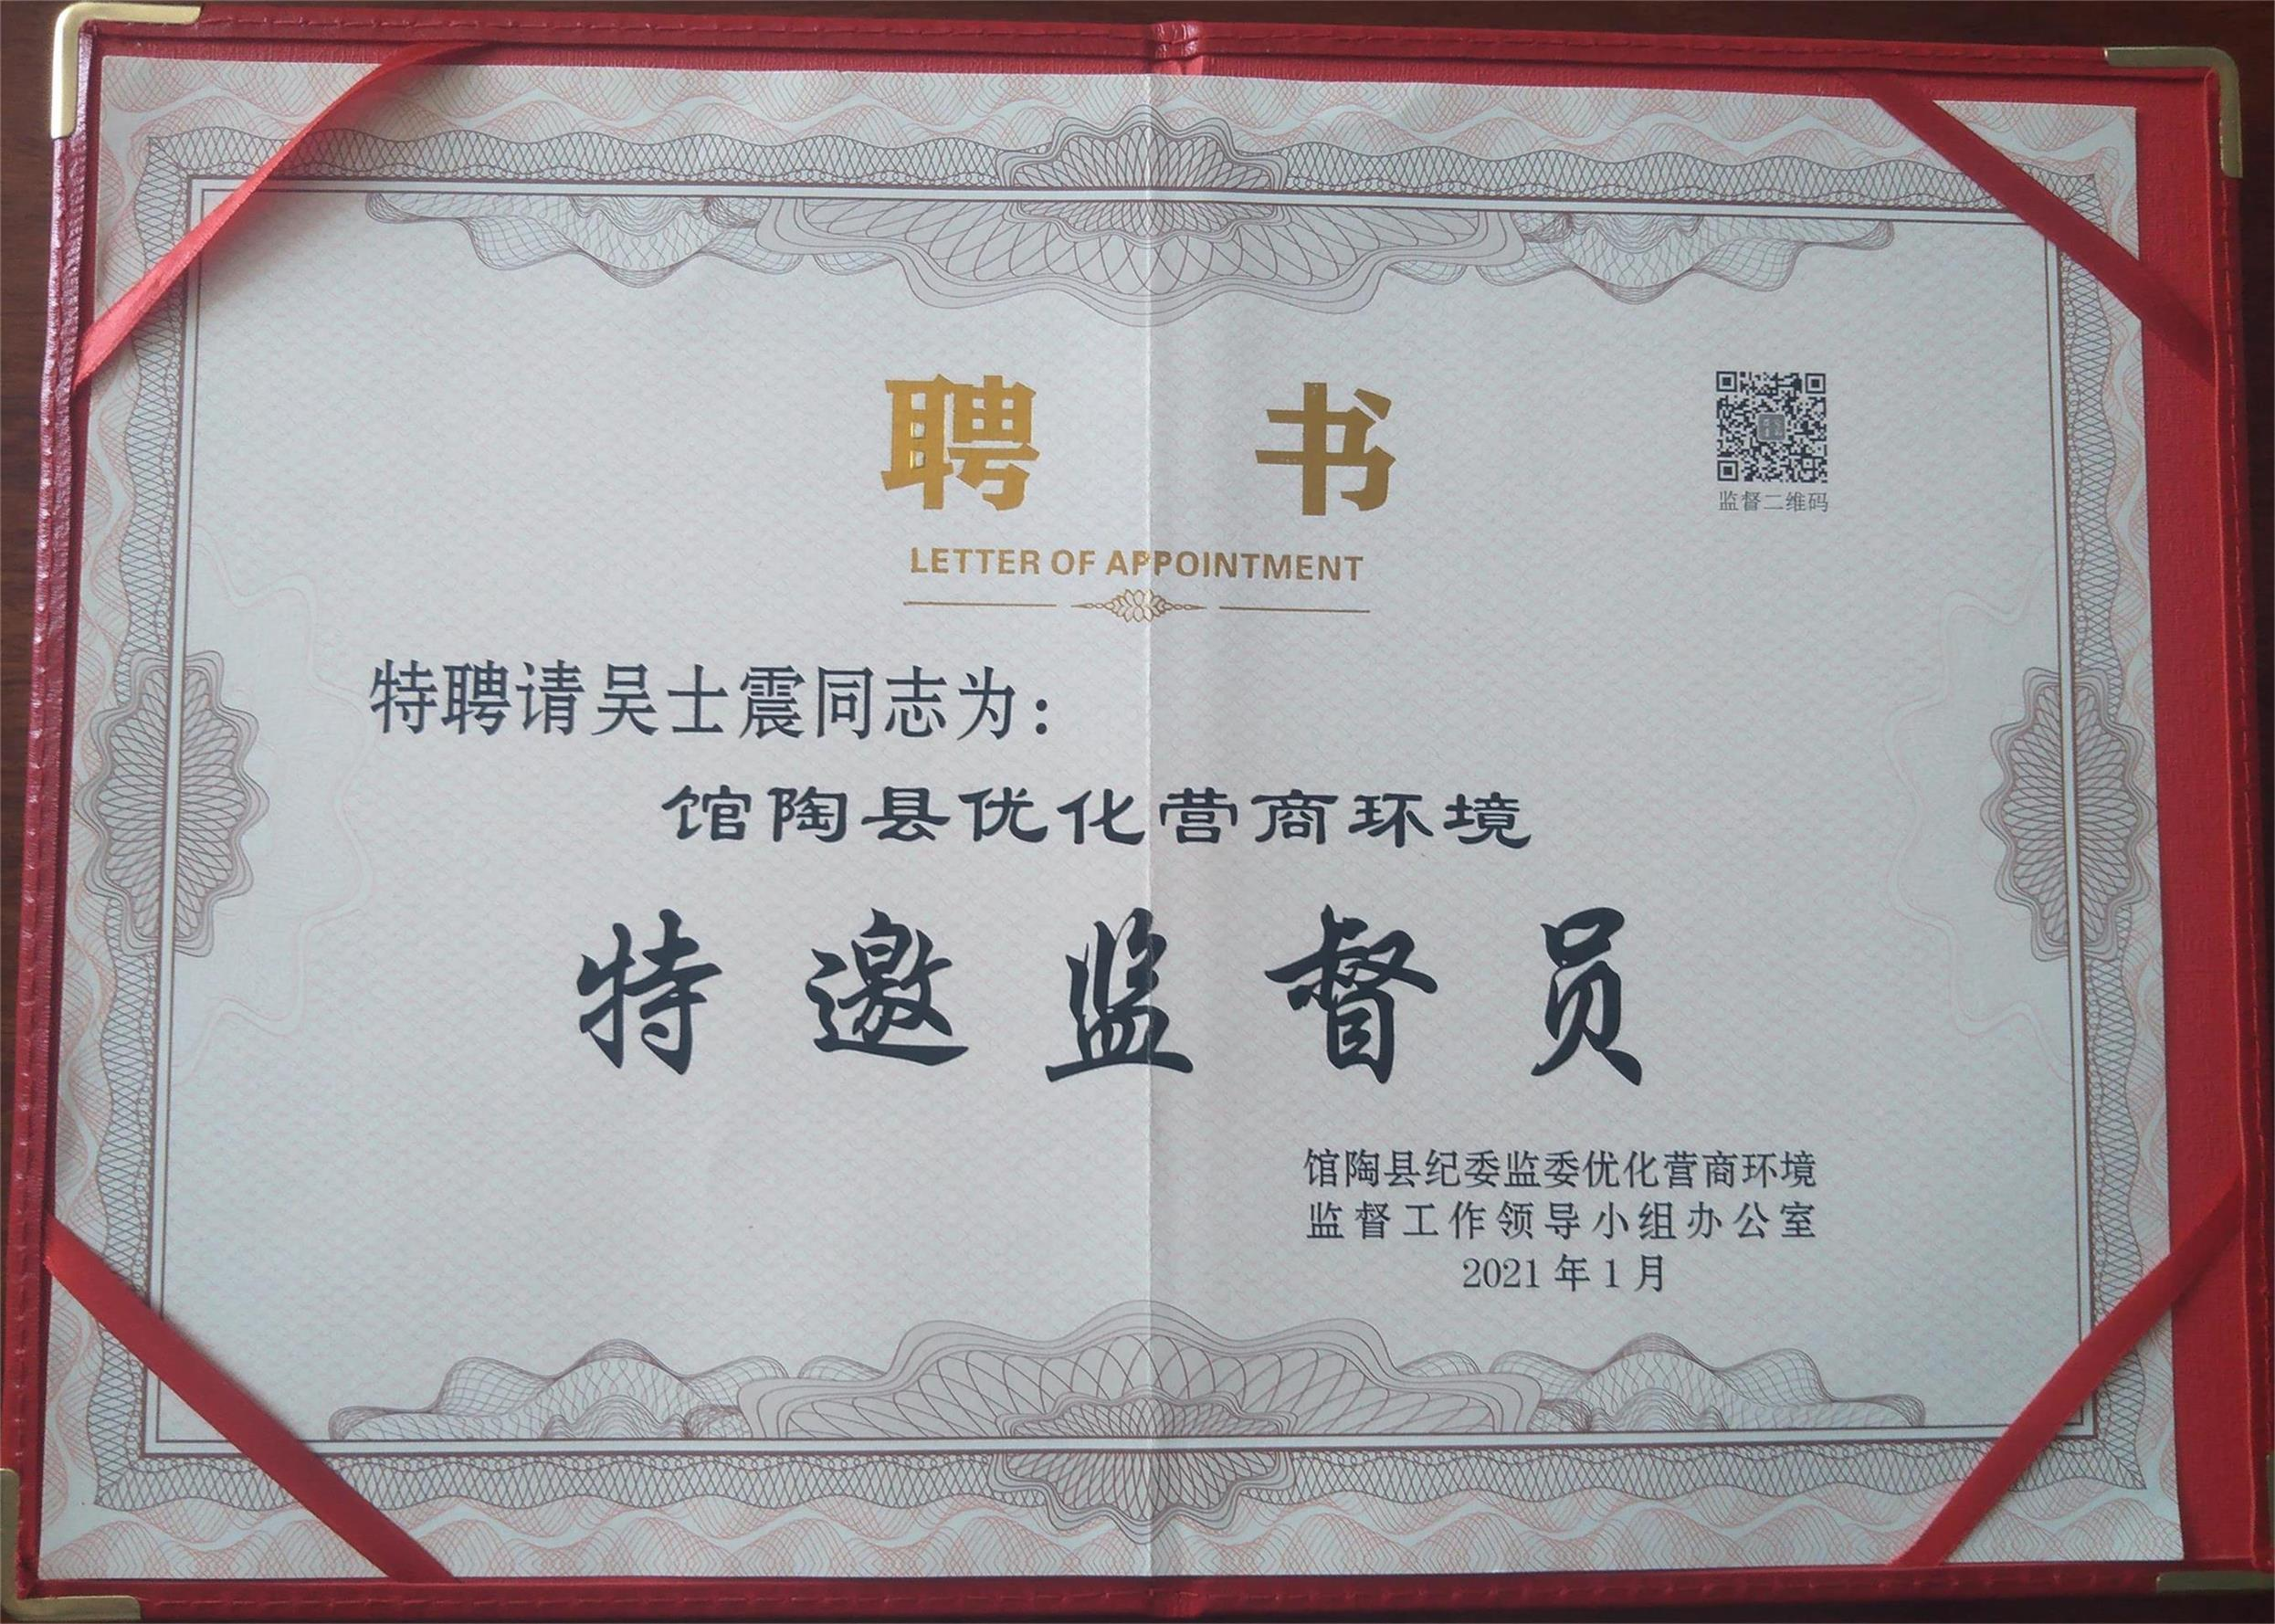 Honorary certificate